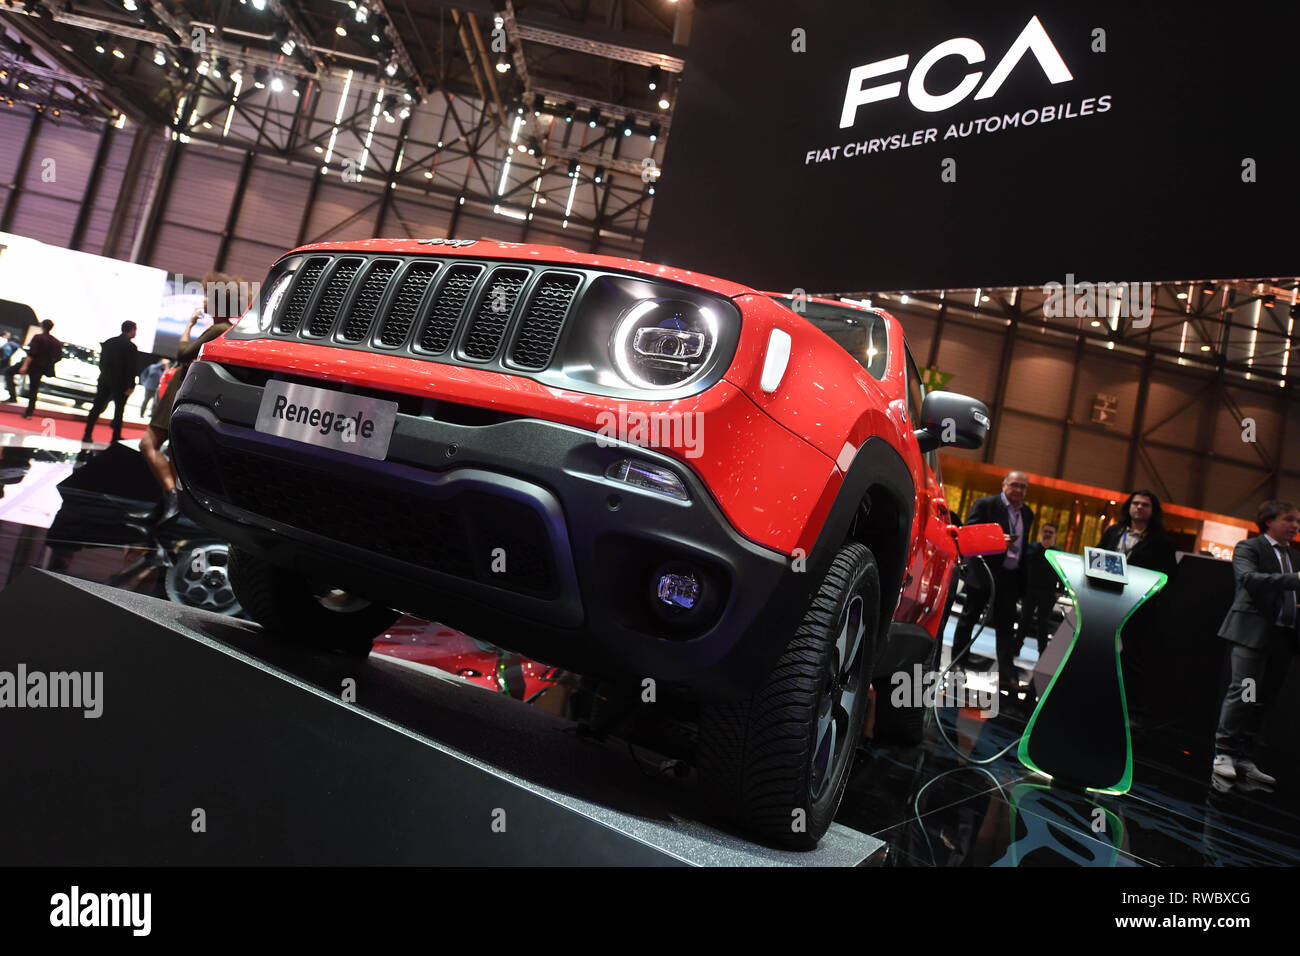 """Genf, Switzerland. 05th Mar, 2019. A Jeep Renegade 4x4 e is presented at the Geneva Motor Show on the first press day. In the background you can see the writing """"FCA Fiat Chrysler Automobiles"""", to which Jeep belongs. The 89th Geneva Motor Show starts on 7 March and lasts until 17 March. Credit: Uli Deck/dpa/Alamy Live News Stock Photo"""